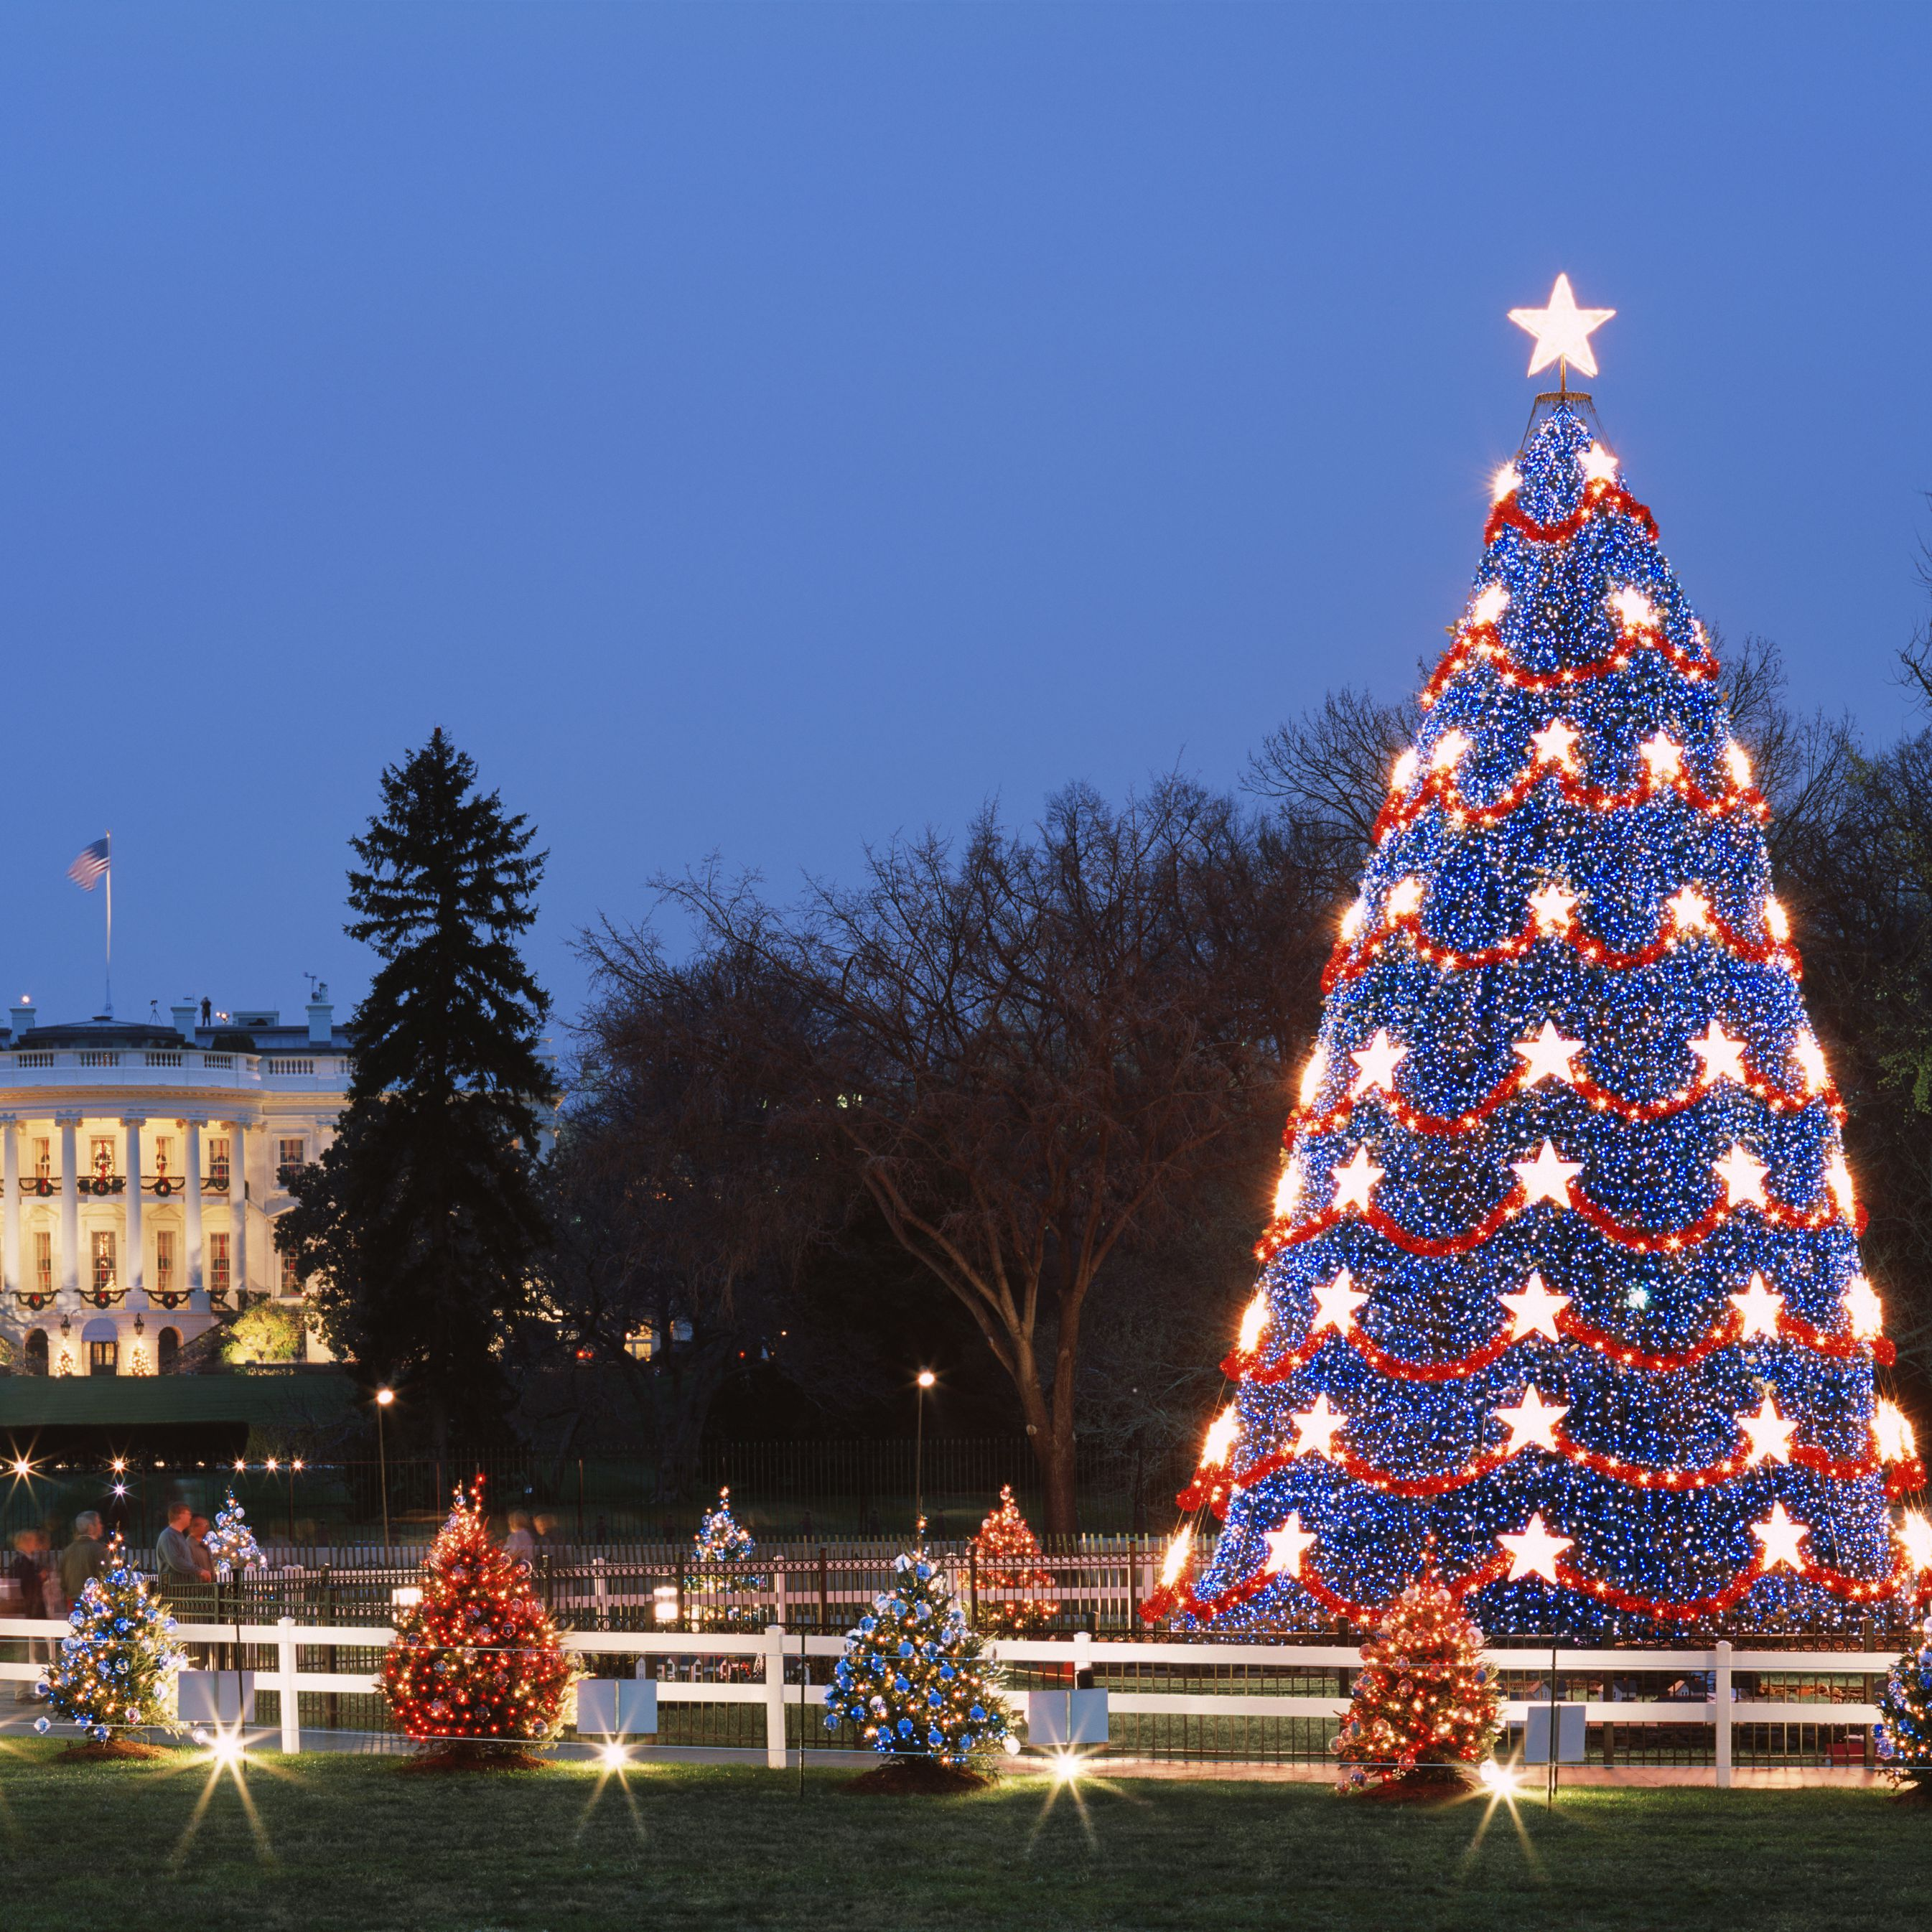 German Christmas Village Washington State.2019 Holiday Markets In The Washington D C Area